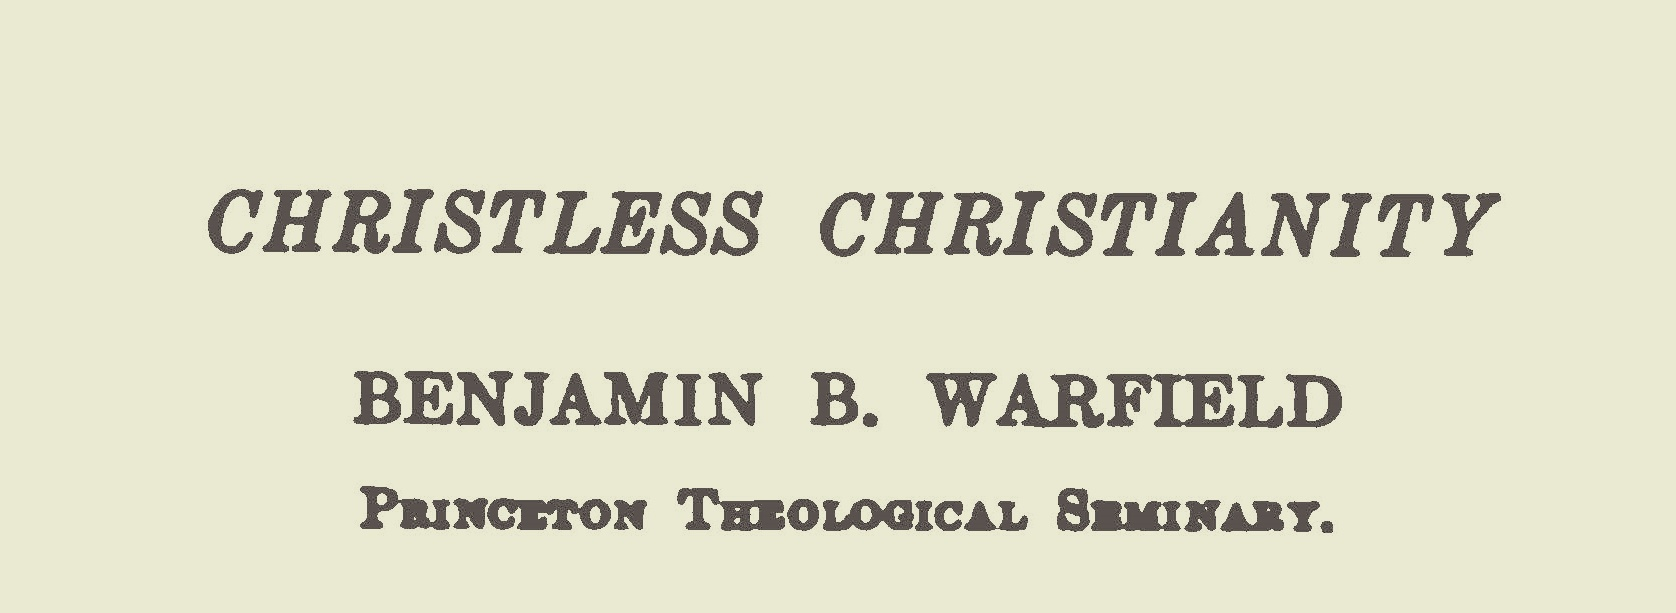 Warfield, Benjamin Breckinridge, Christless Christianity Title Page.jpg